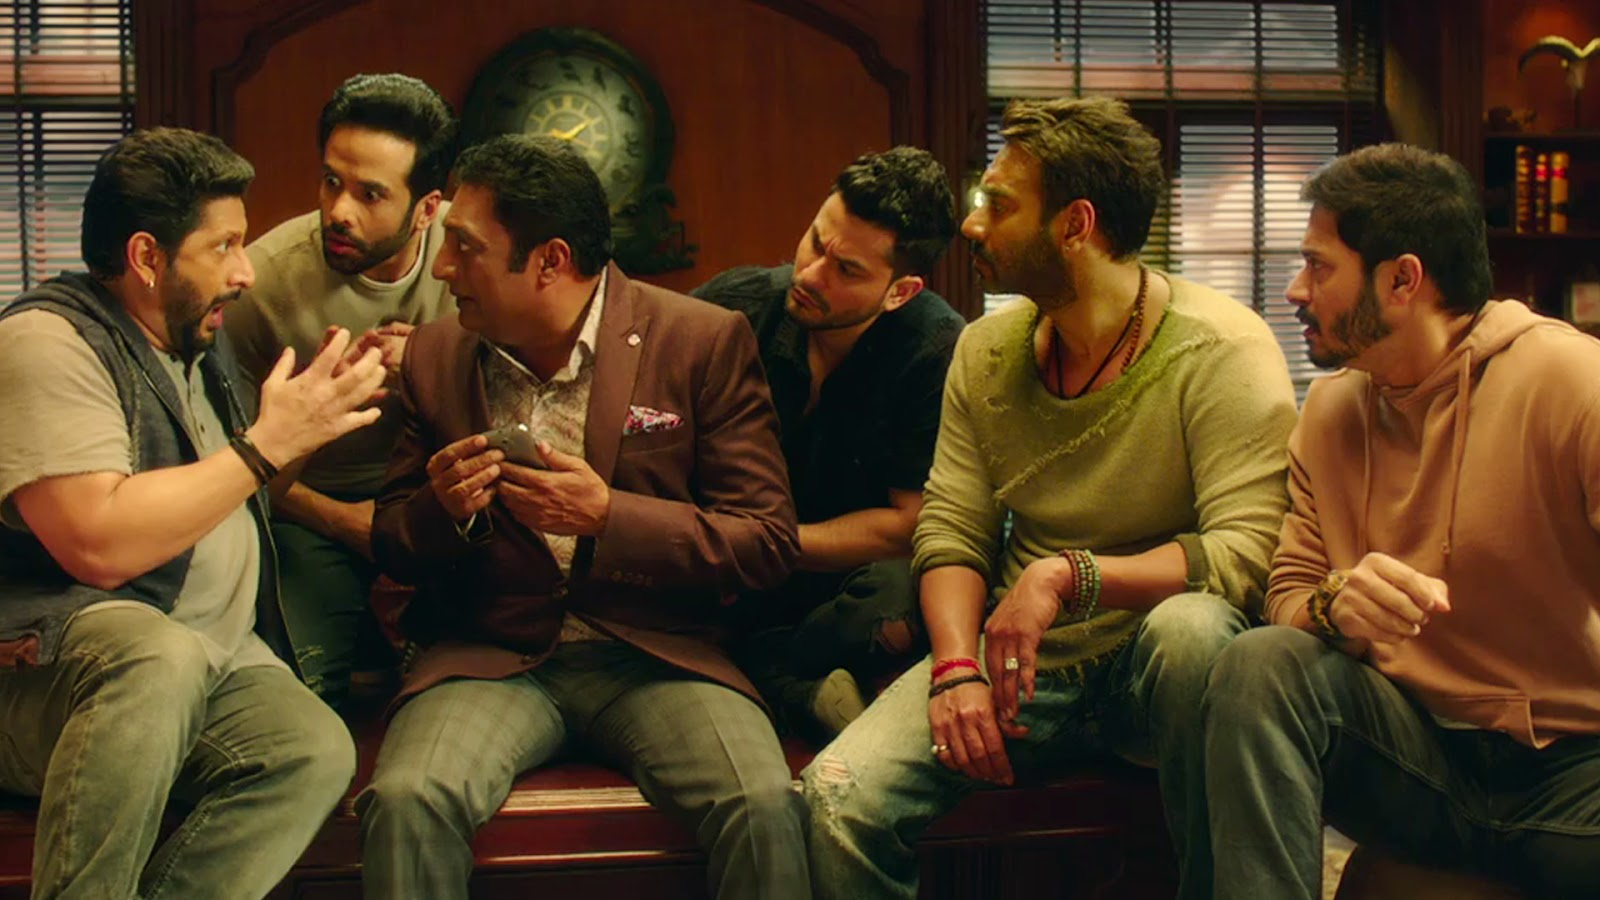 Golmaal Again Movie HD Wallpaper.jpg